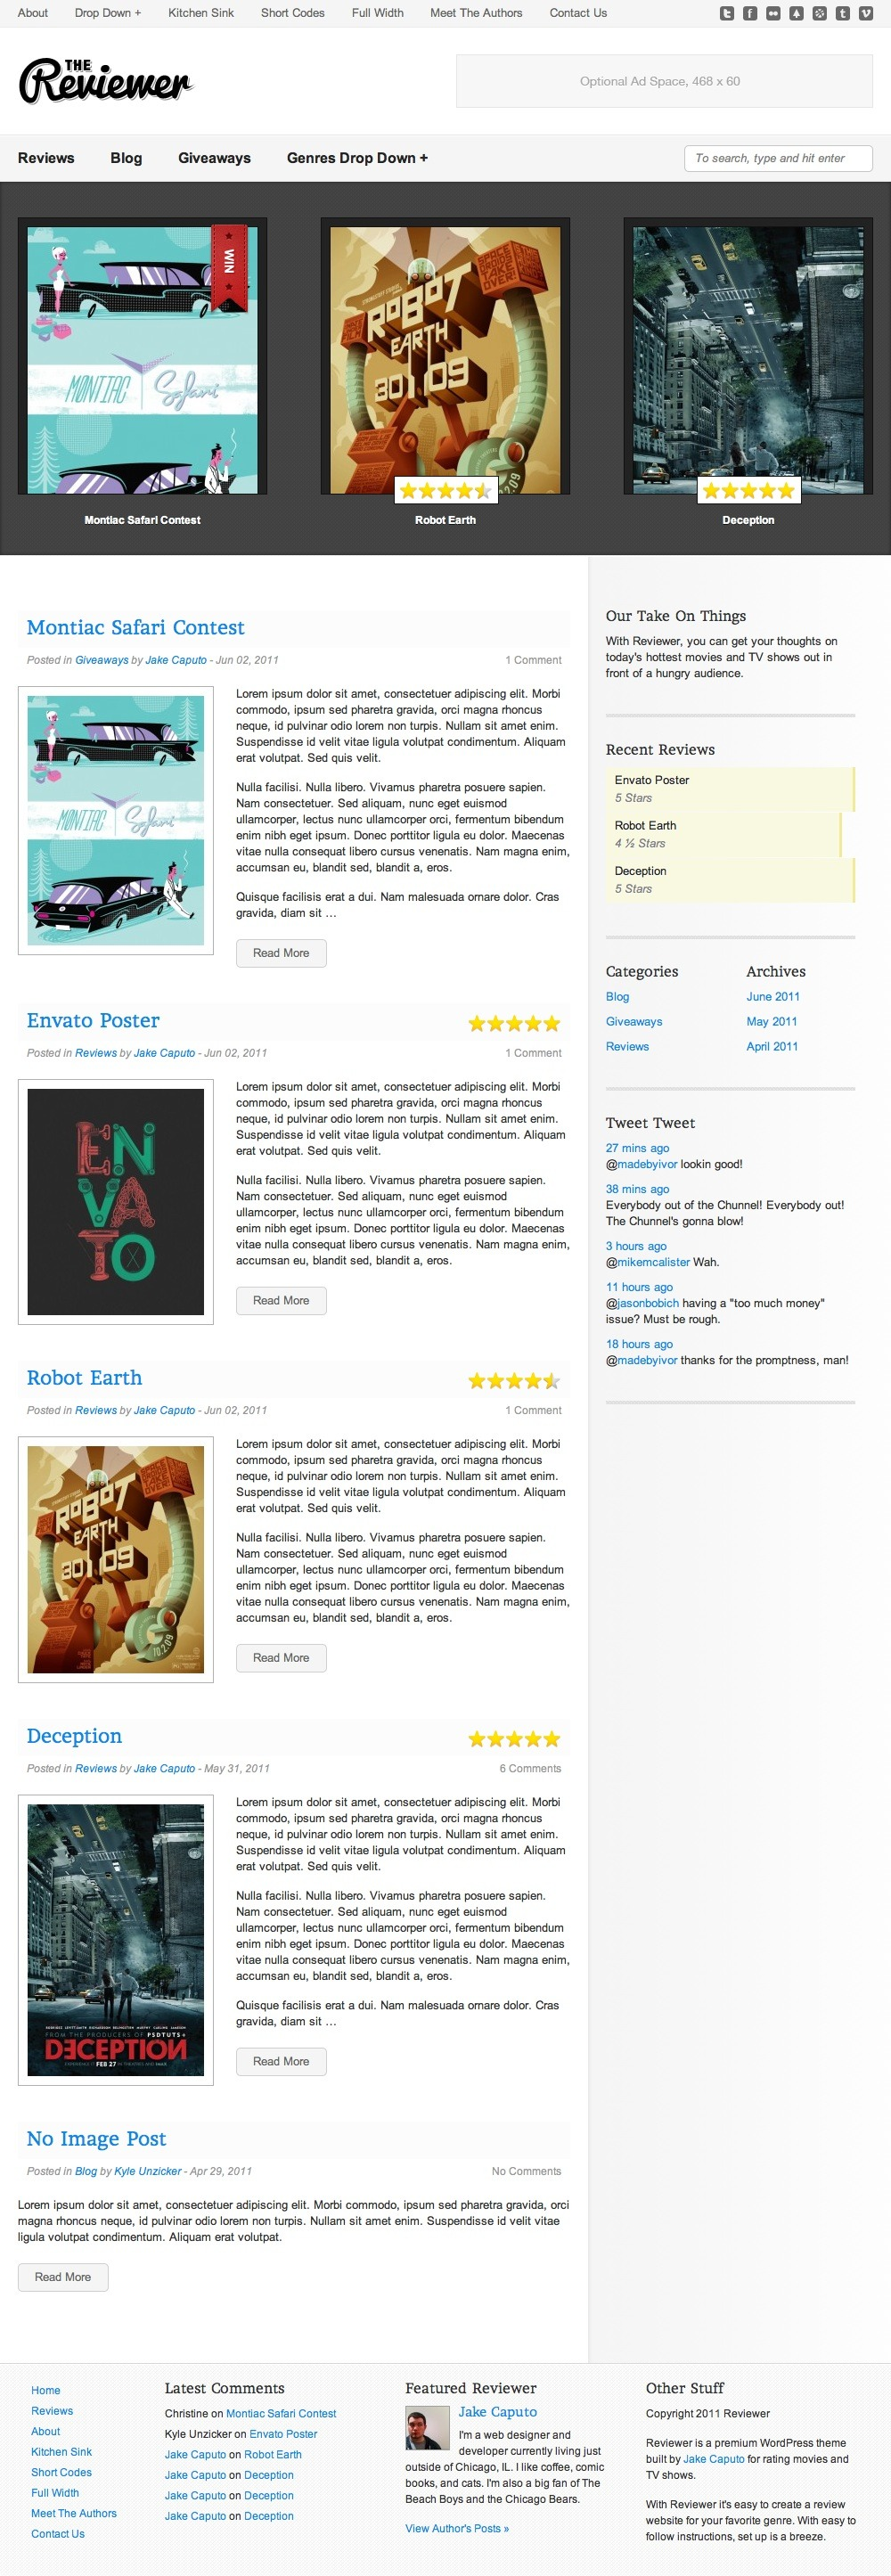 Reviewer - HTML Template for Entertainment Reviews - The Reviewer Home page has a dark (with an optional light counterpart) featured post area that is controlled by WordPress sticky posts, as well as a custom Recent Reviews bar graph style widget.